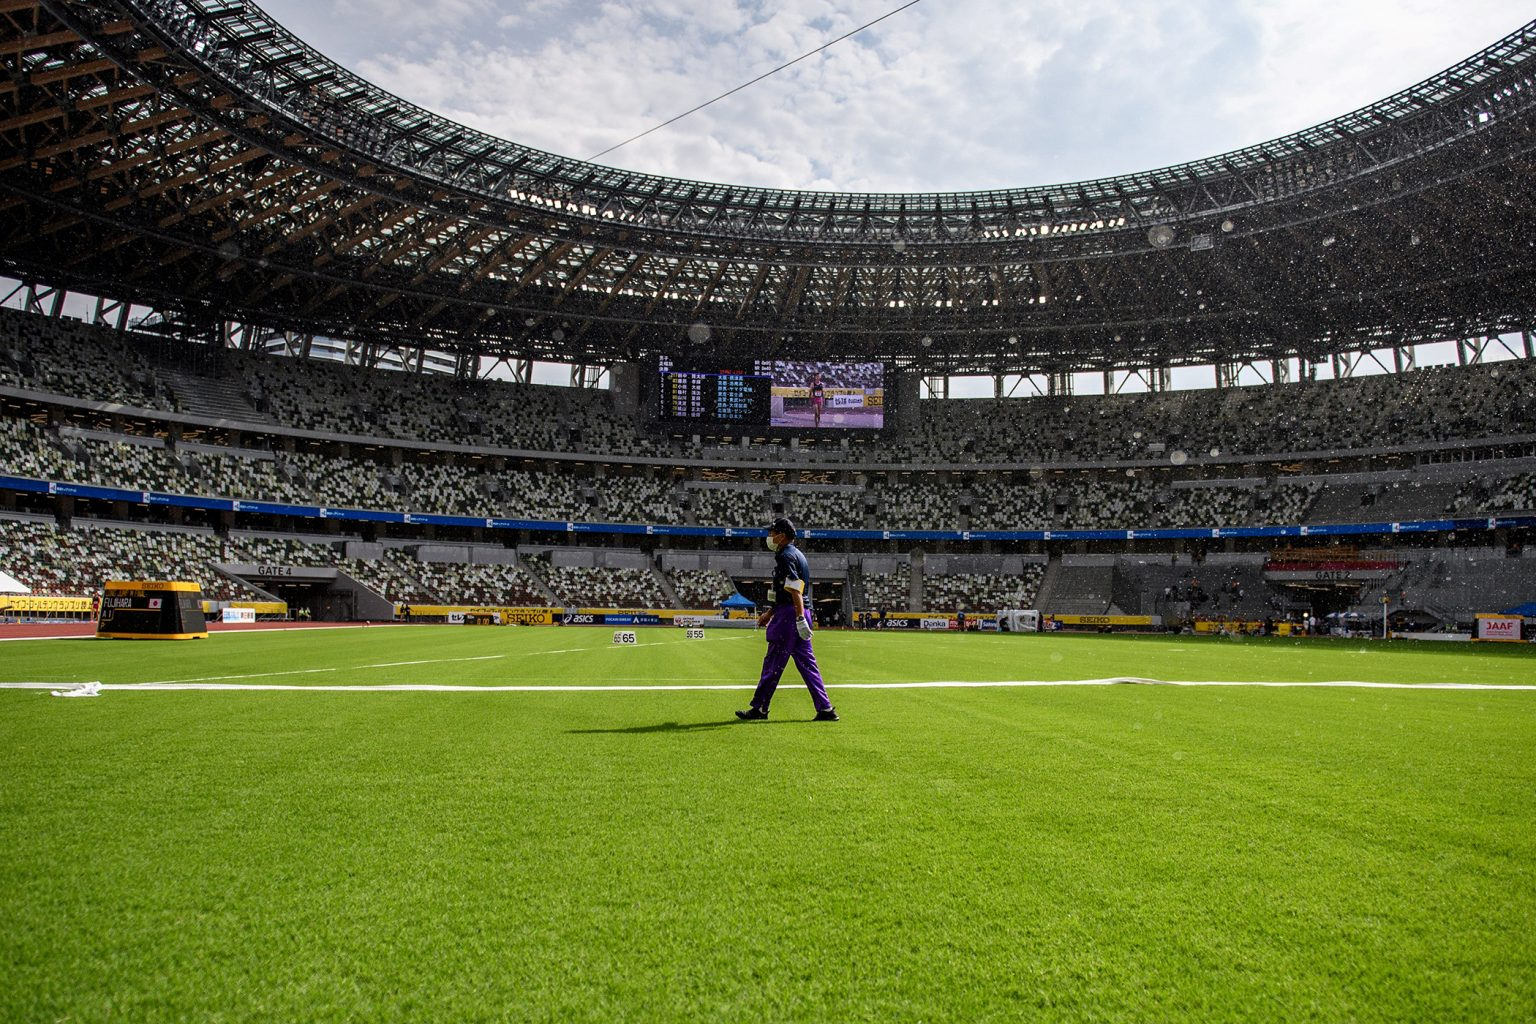 An official walks across the infield of the National Stadium in Tokyo, home of the 2020 Olympic Games. A UGA-bred grass will be used on the field. (Photo by PHILIP FONG/AFP via Getty Images)